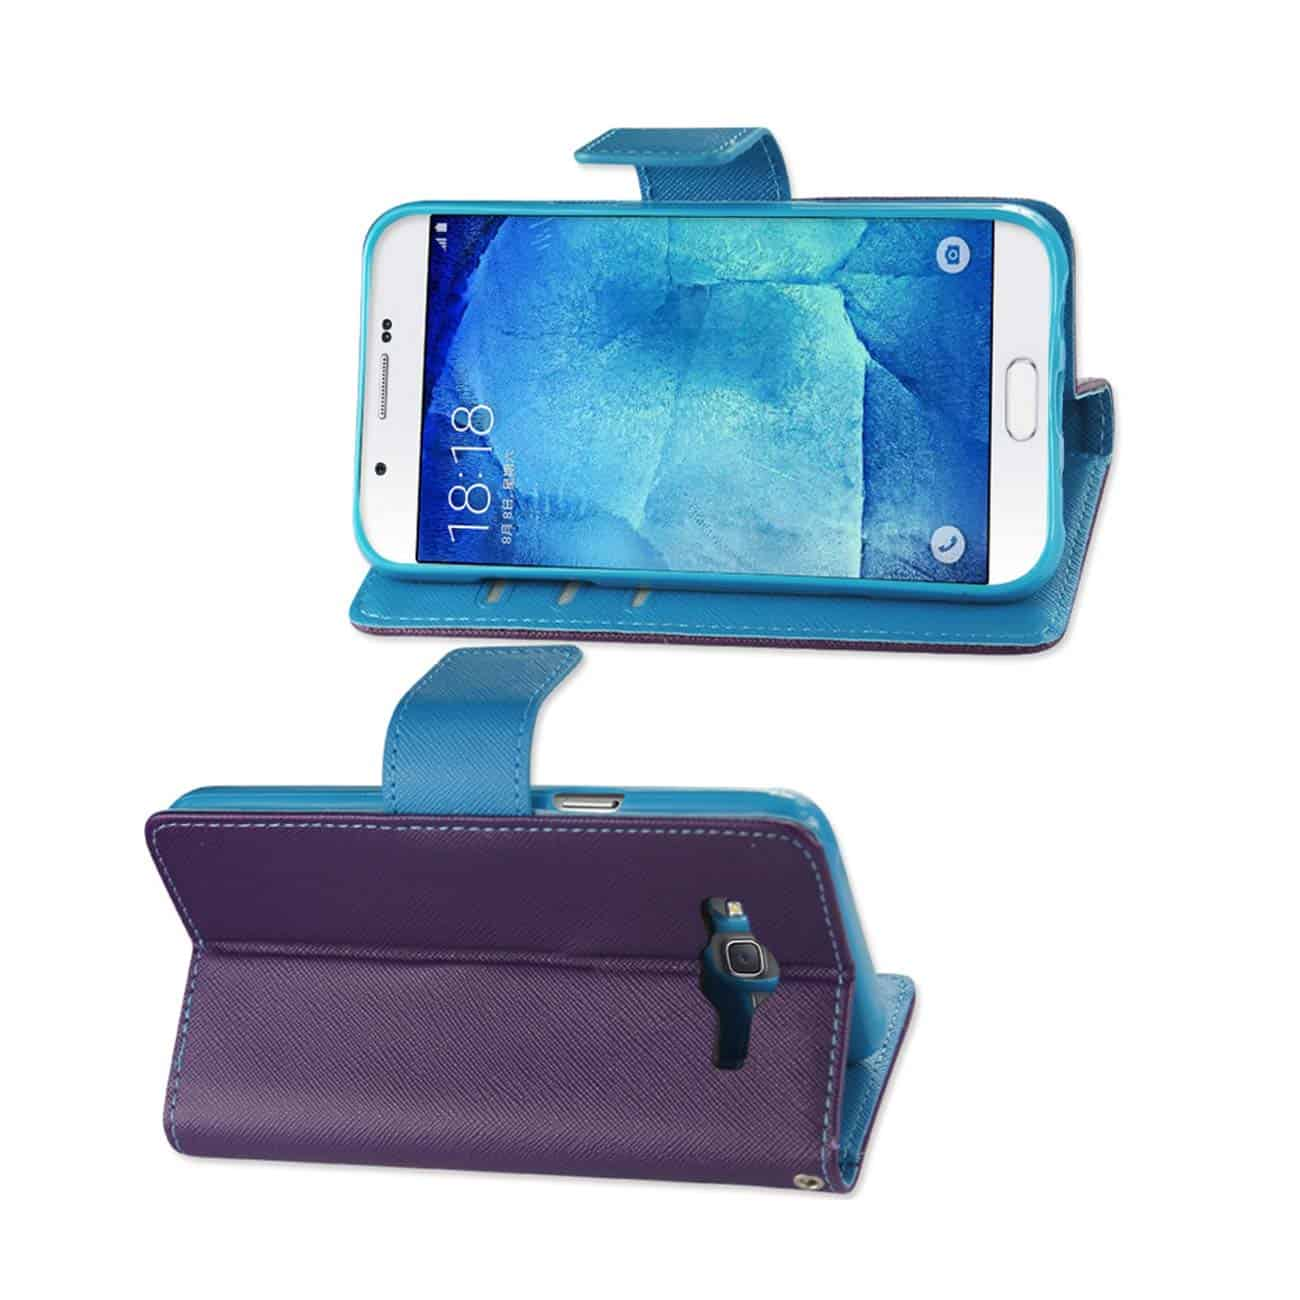 SAMSUNG GALAXY A8 3-IN-1 WALLET CASE IN PURPLE